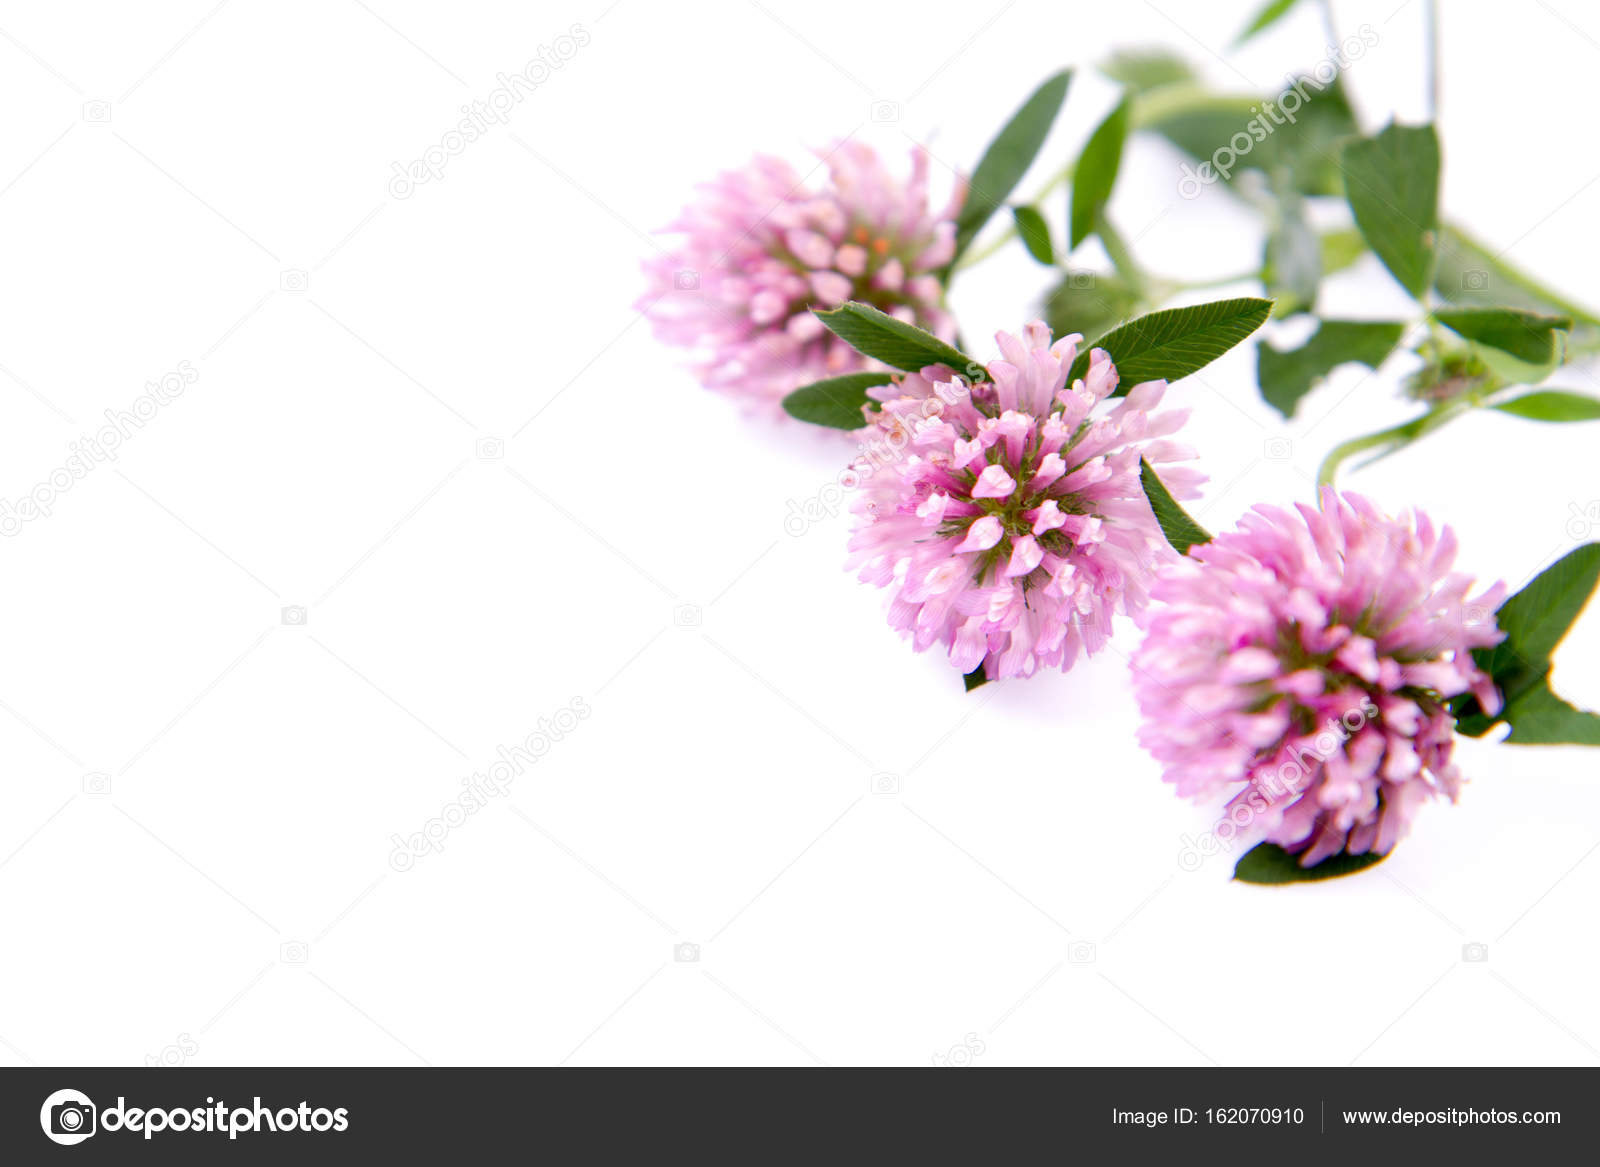 Pink Clover Flowers Stock Photo Teine26 162070910